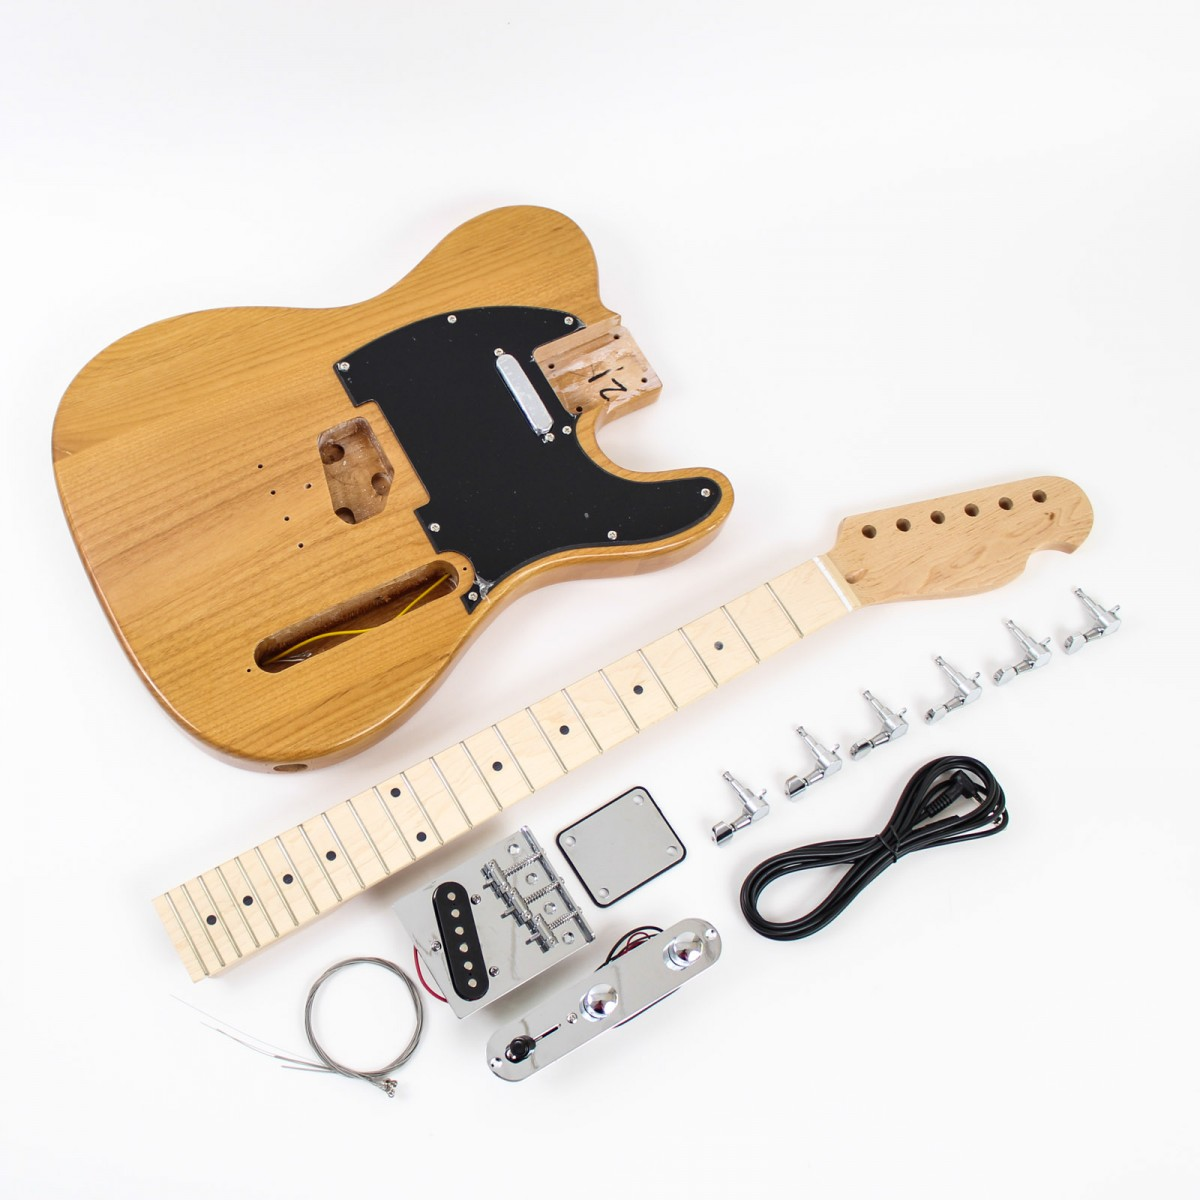 Guitar Wiring Harness Diy Everything About Diagram Fender Telecaster Humbucker Strat Schematics Rh Ksefanzone Com Switch Chevy